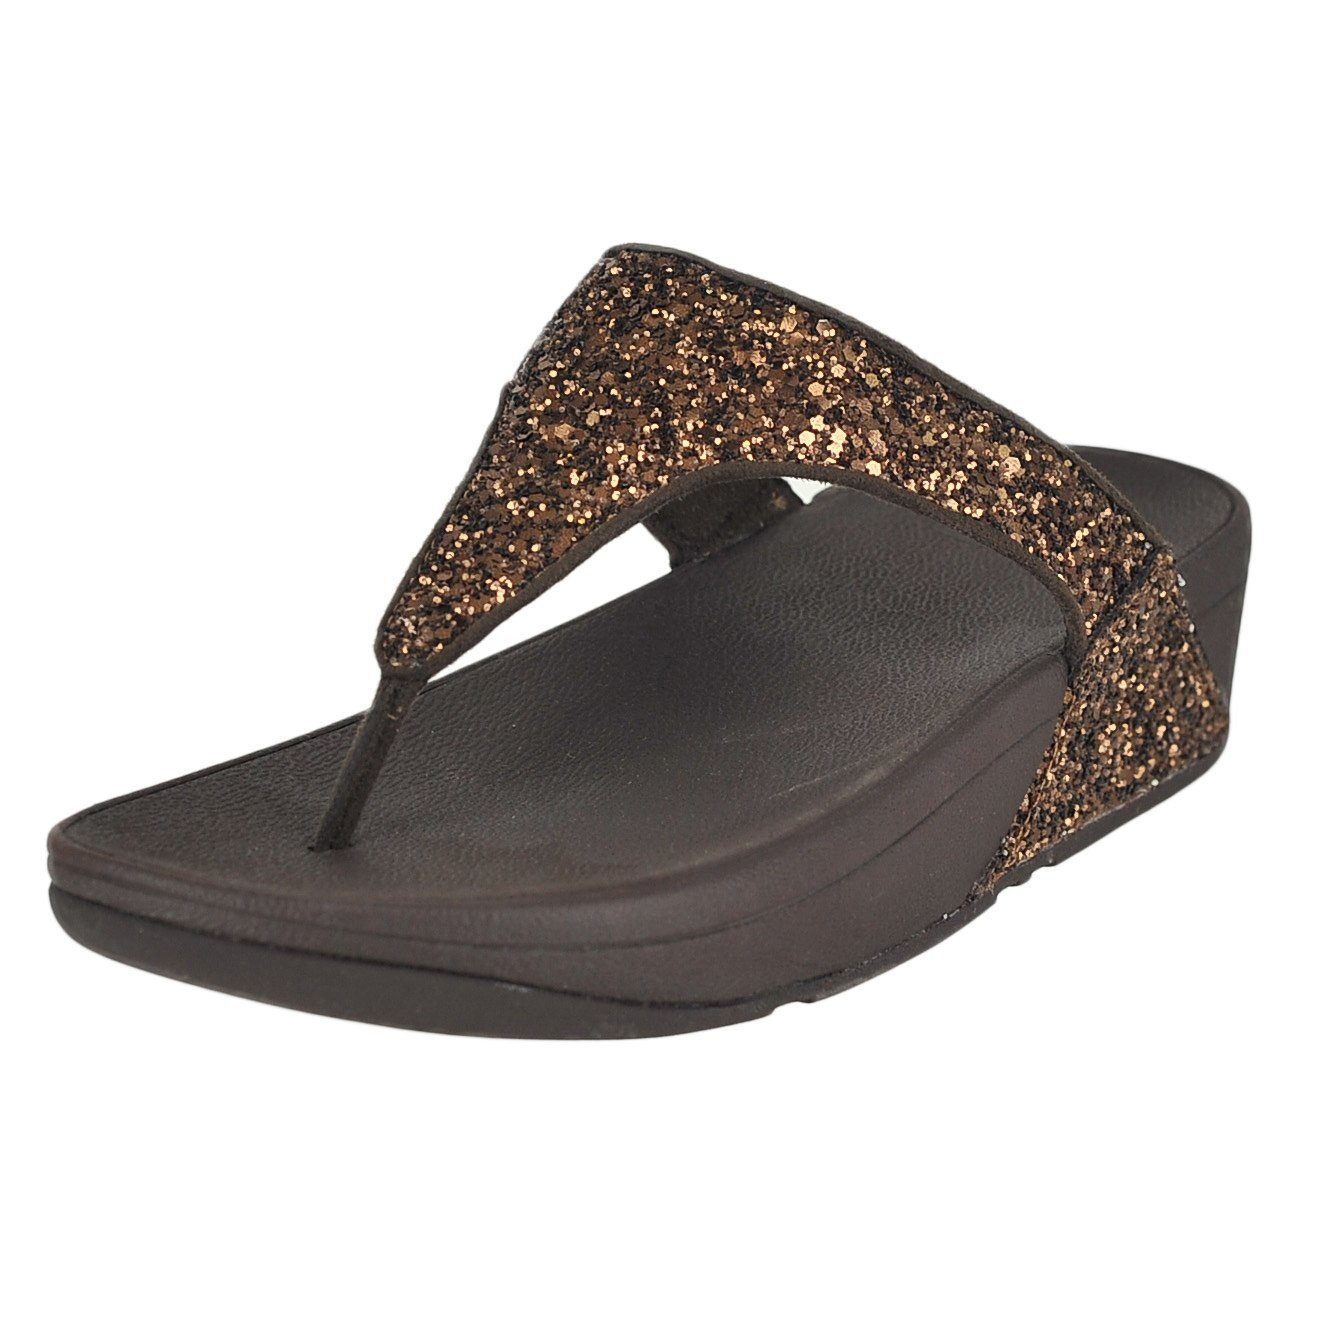 FitFlop Women's Glitterball Wedge Thong Sandal,Bronze Imi-Leather/Glitter,US 8 M